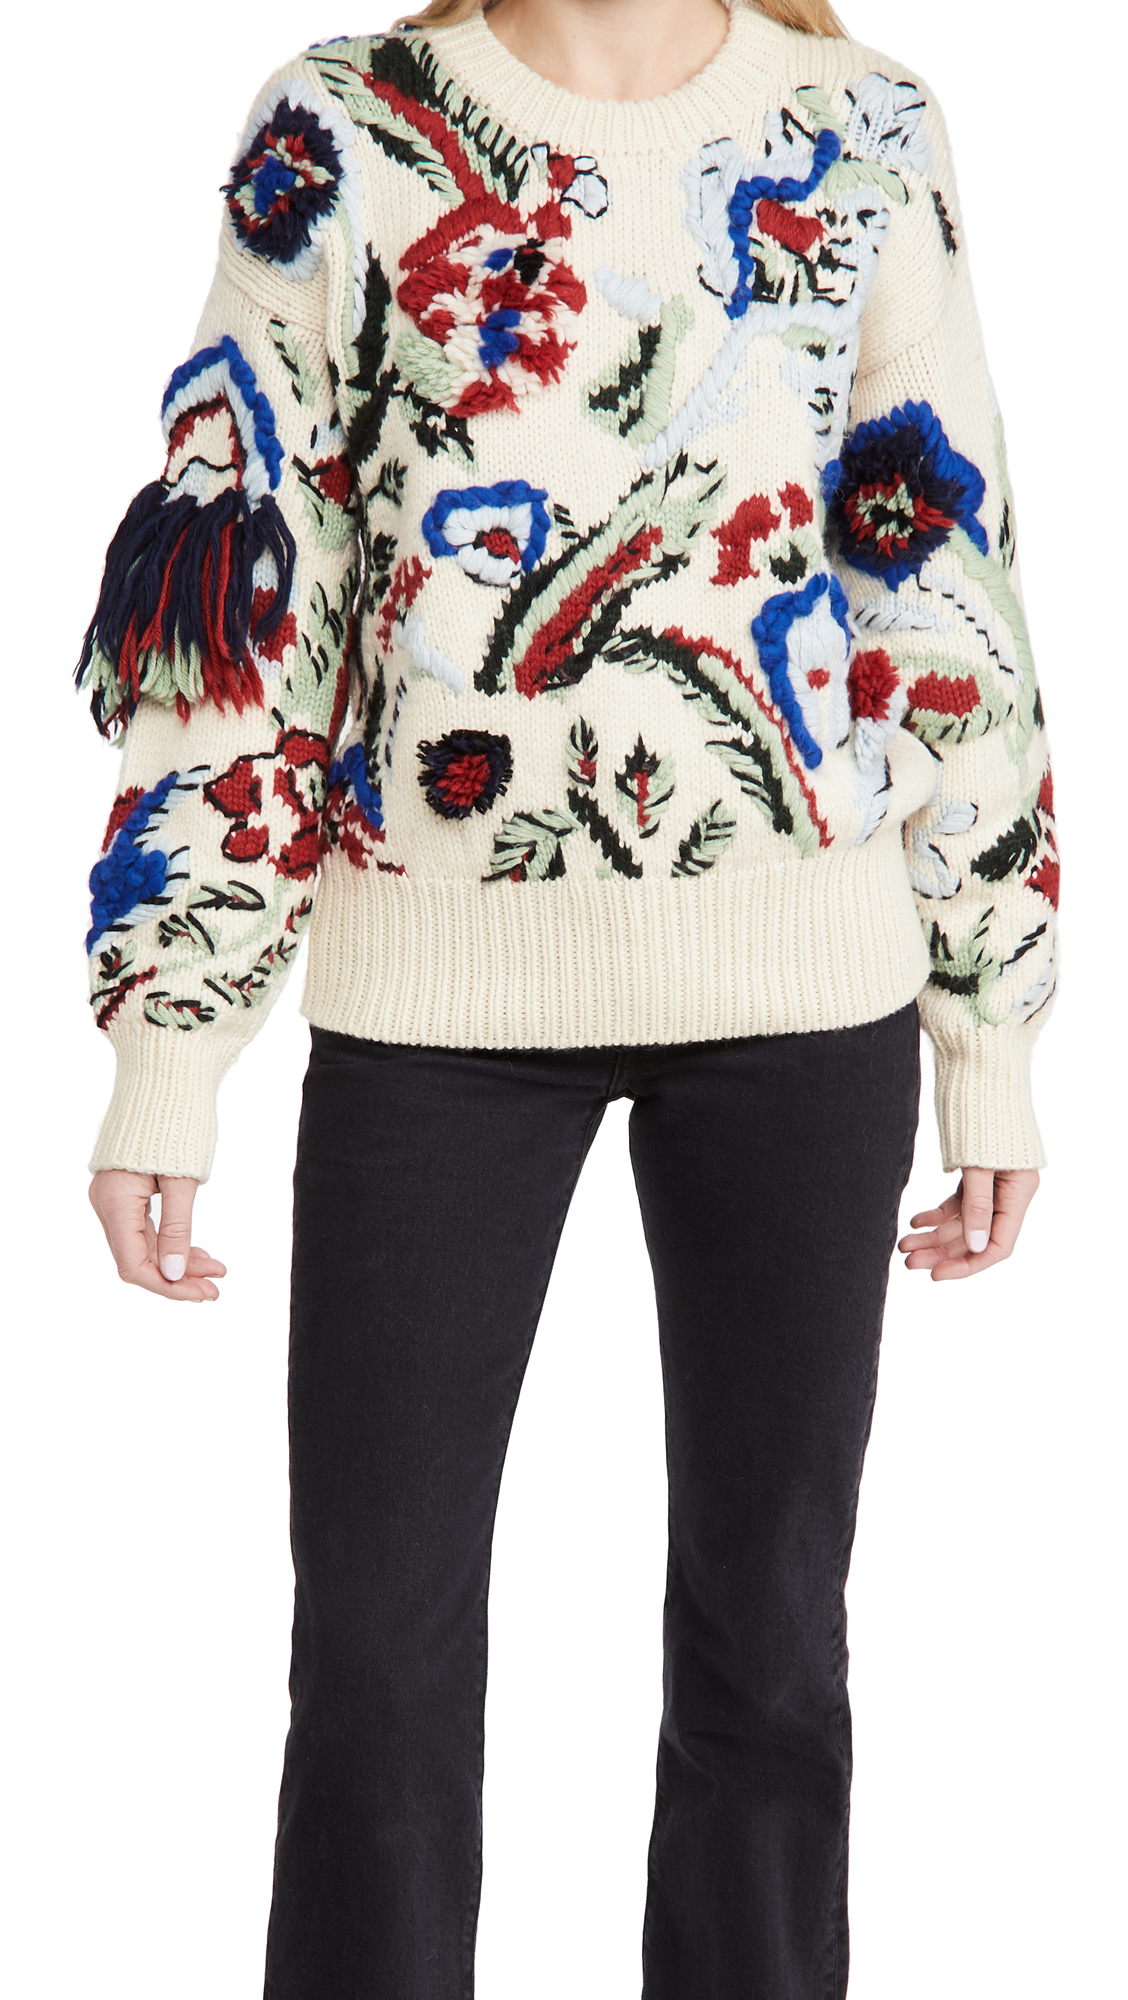 Tory Burch Hand Knit Intarsia Sweater